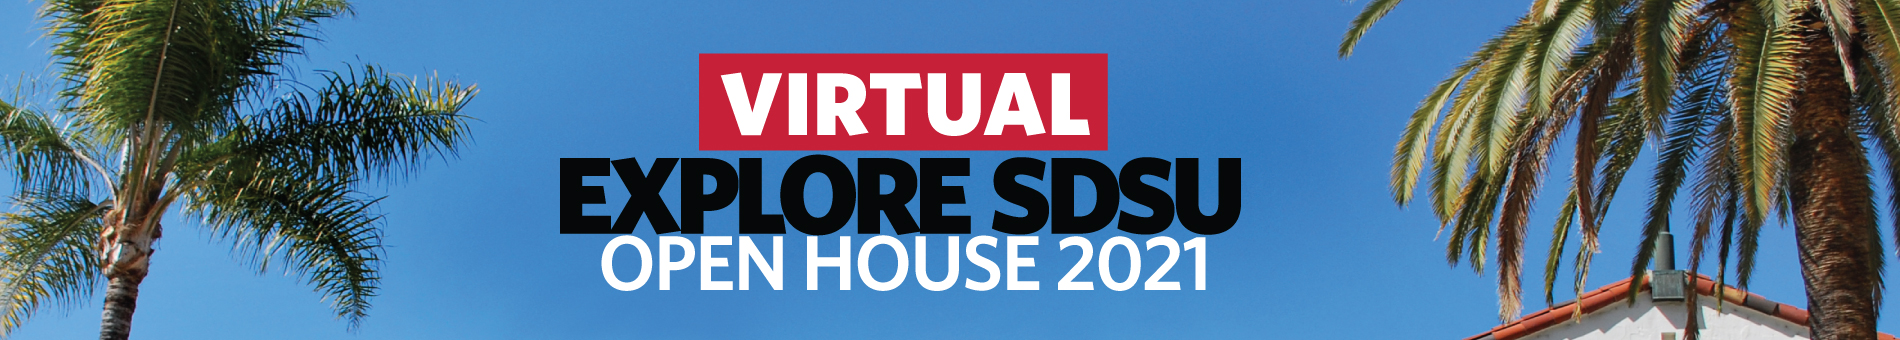 Virtual Explore SDSU Open House 2021